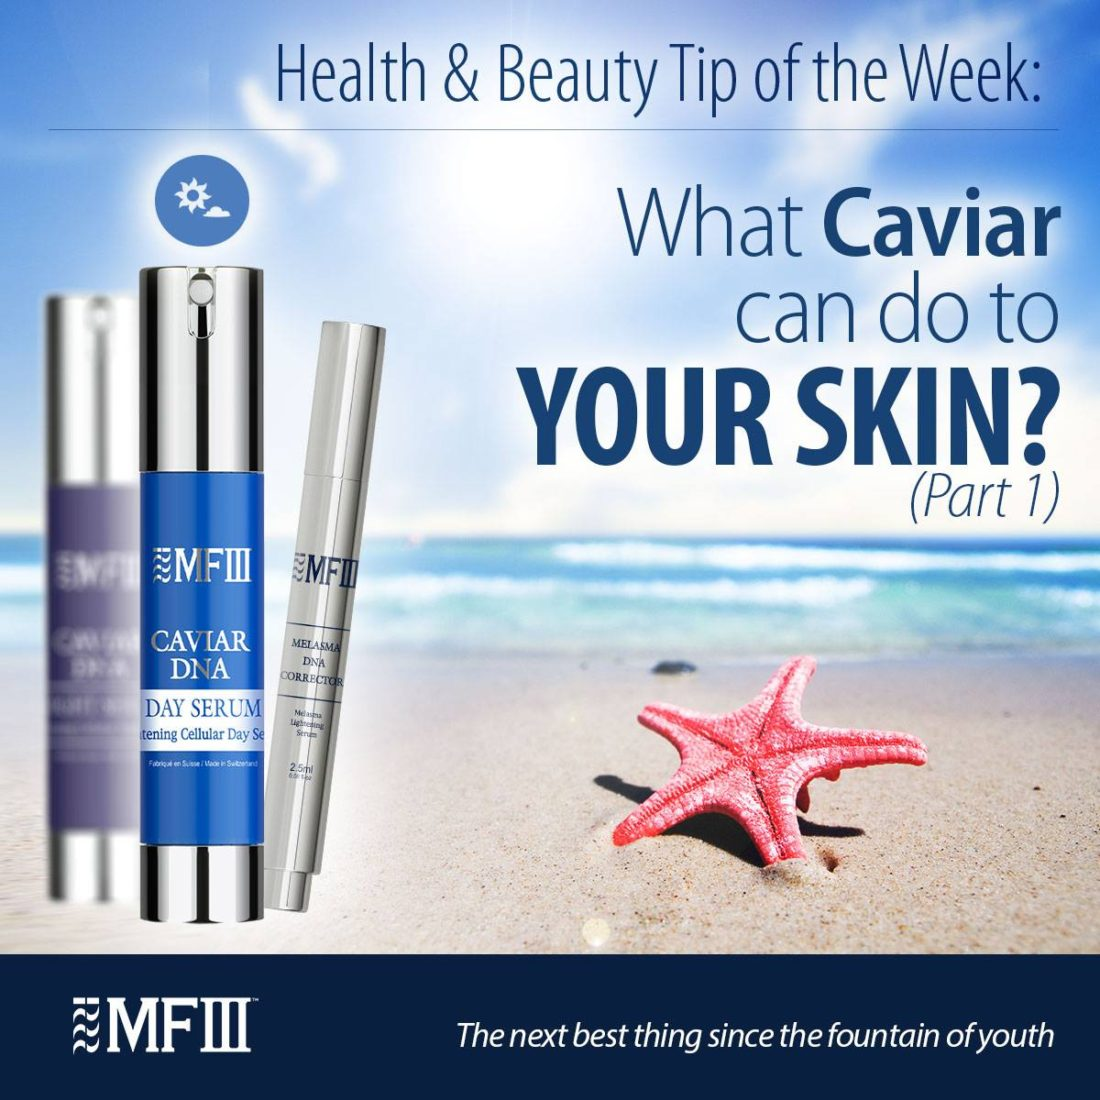 What Caviar can do to your skin?